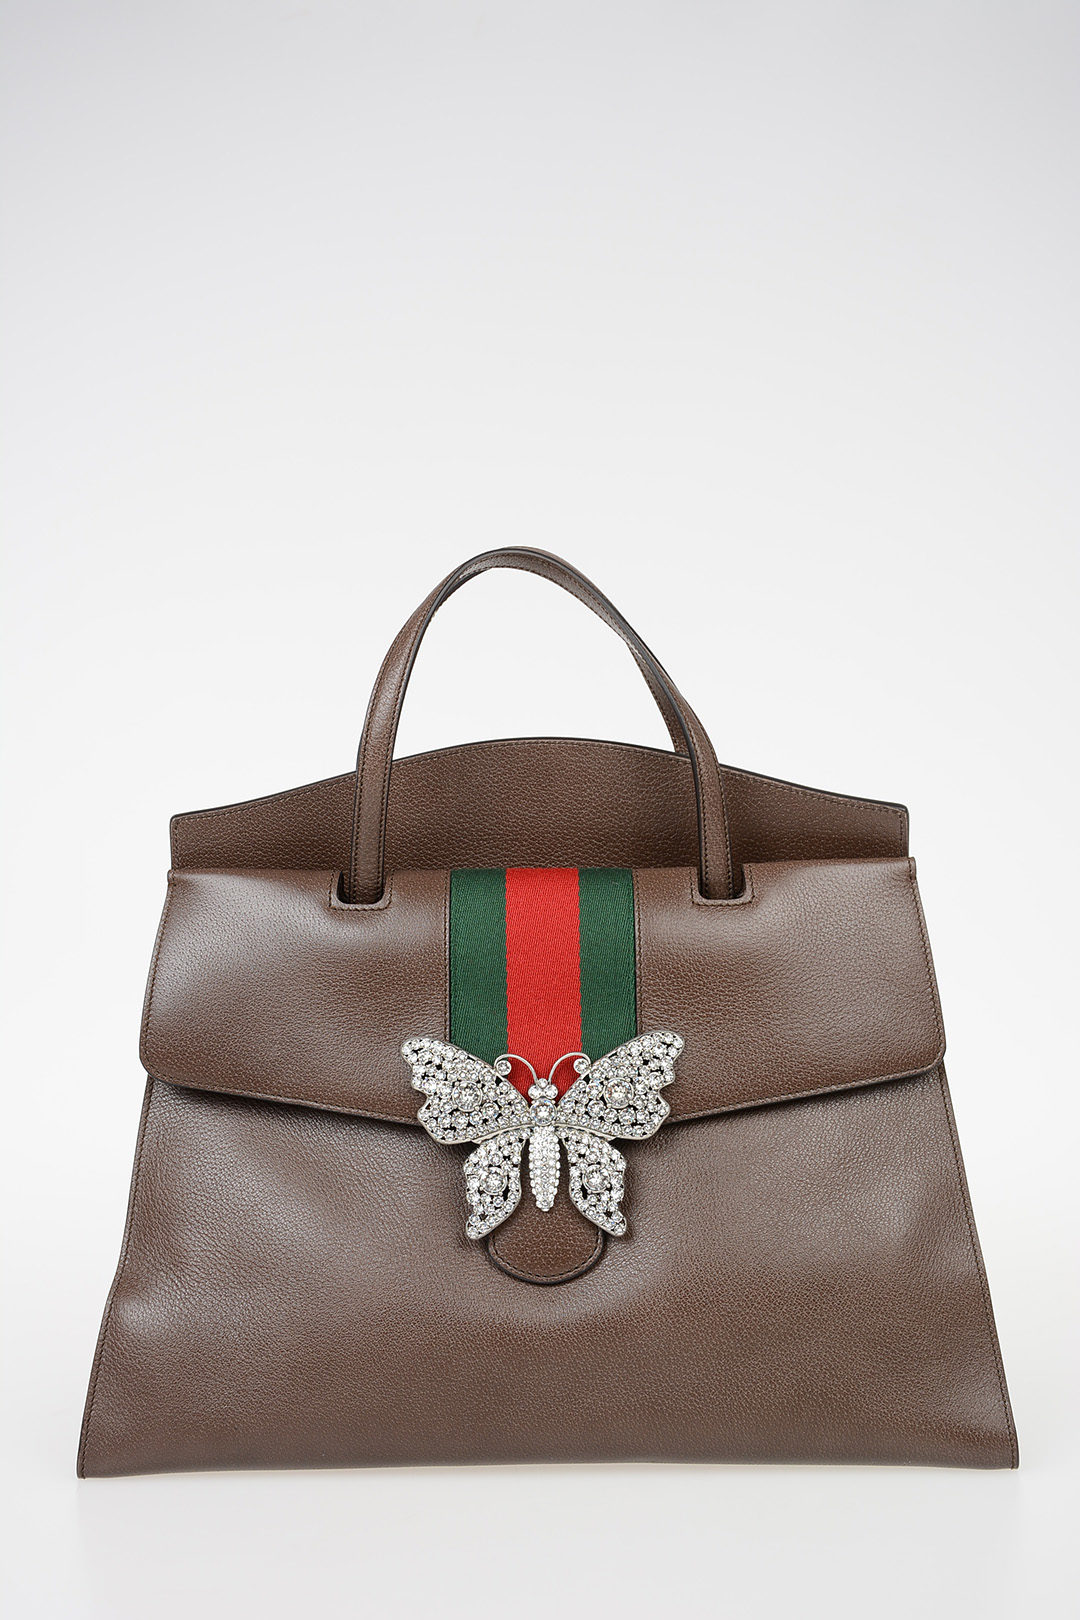 b61761582bb6 Gucci Leather TOTEM Tote Bag women - Glamood Outlet